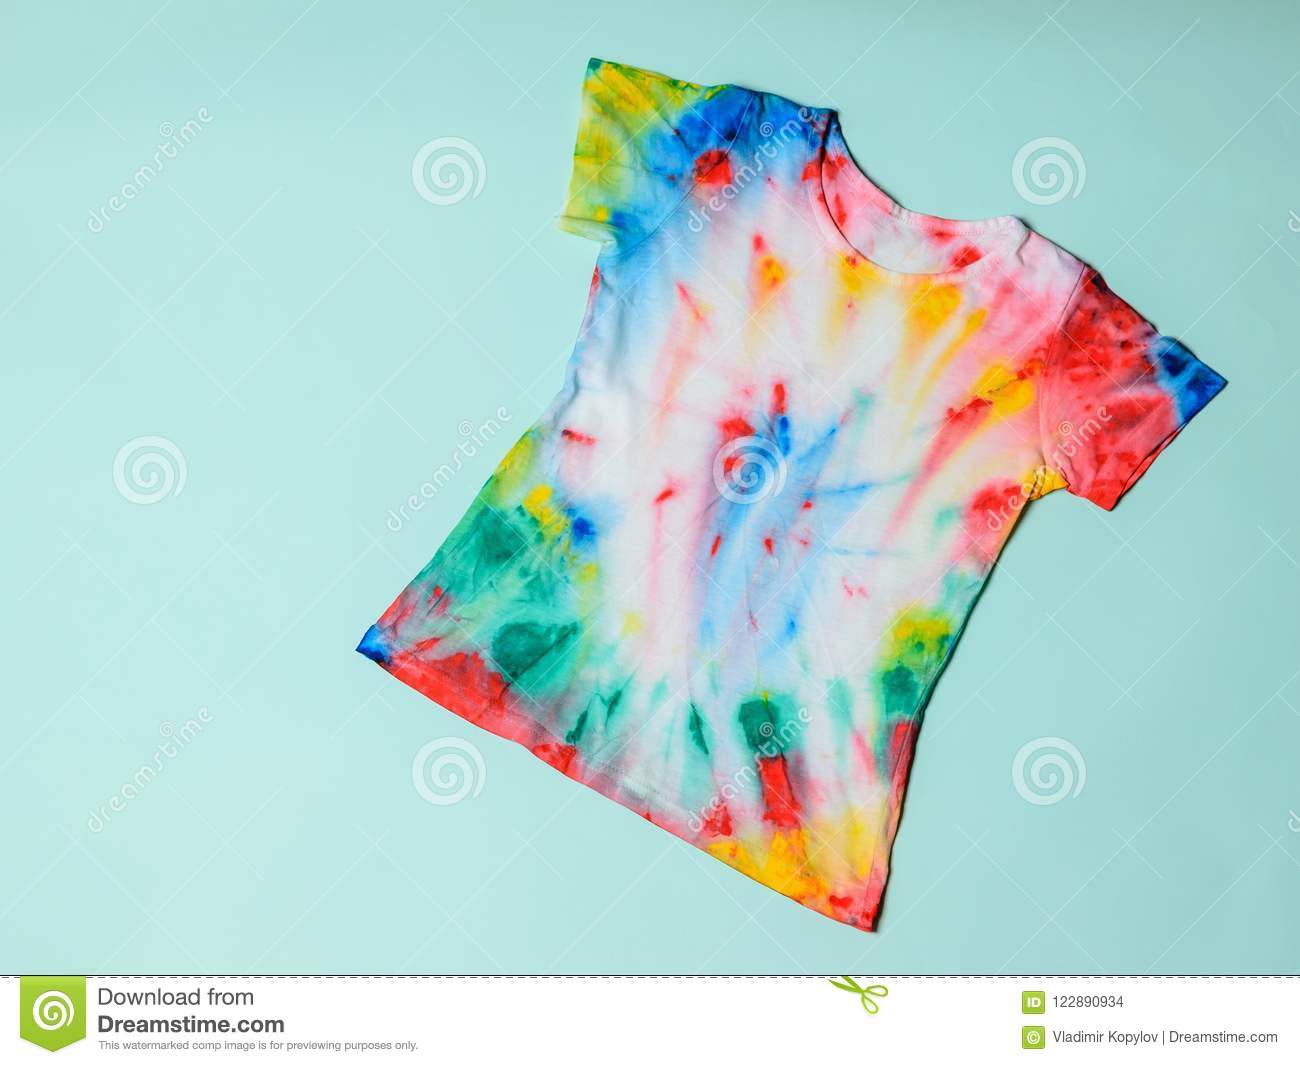 b8f1ade9 T-shirt painted in tie dye style on a blue pastel background. Flat lay